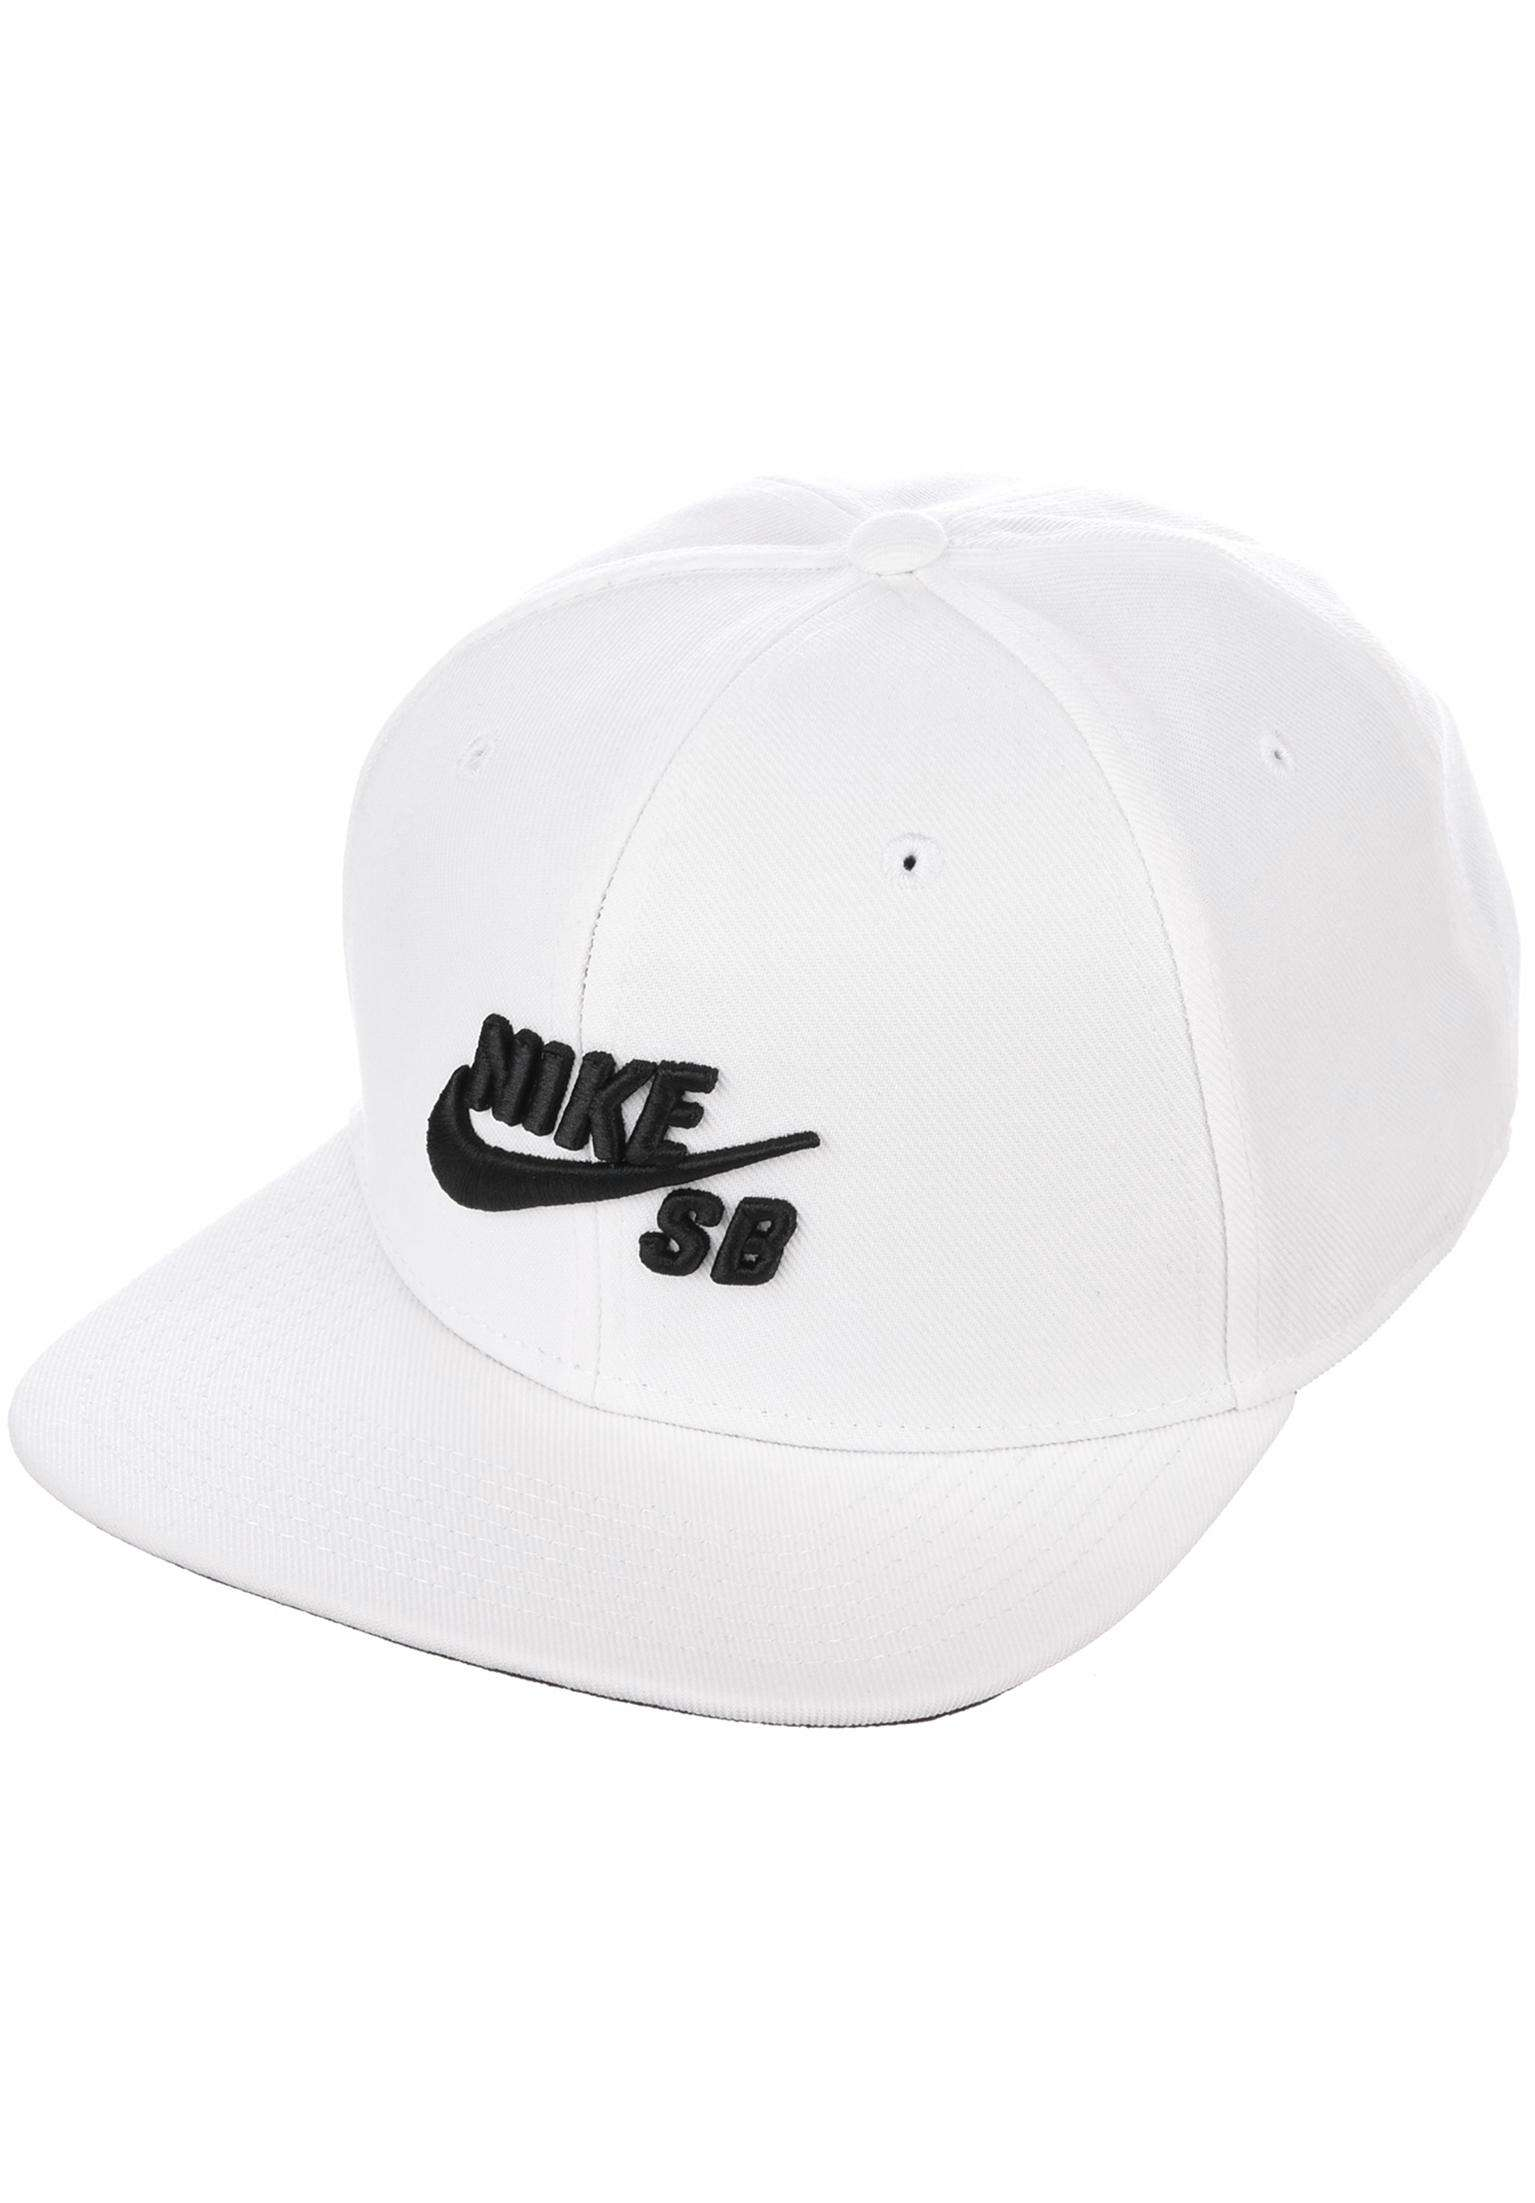 254e72d7fc9 SB Icon Snapback Nike SB Caps in white-white-black for Men